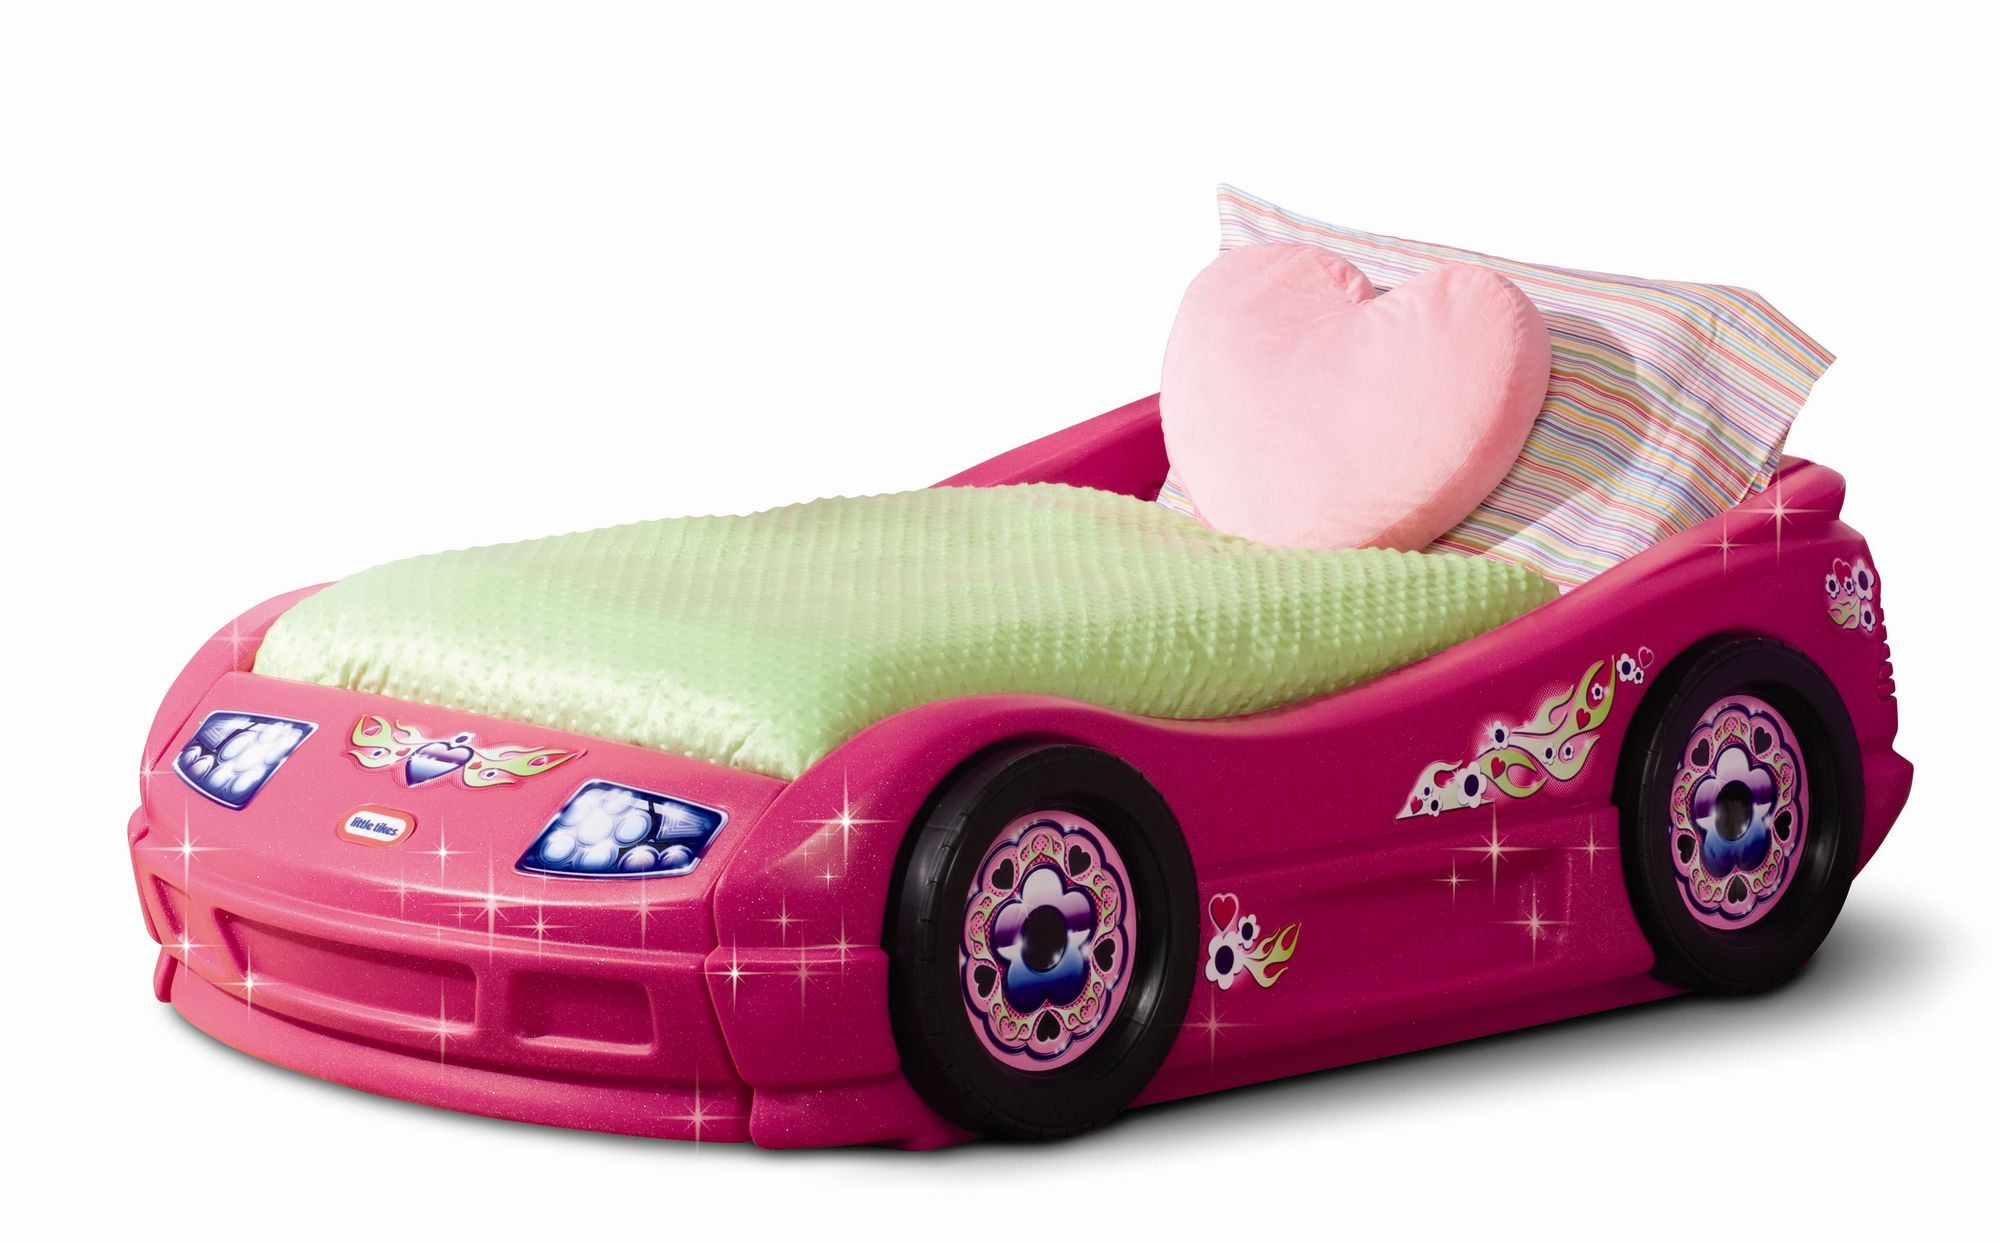 Little Tikes Princess Pink Toddler Roadster Bed Girls Like